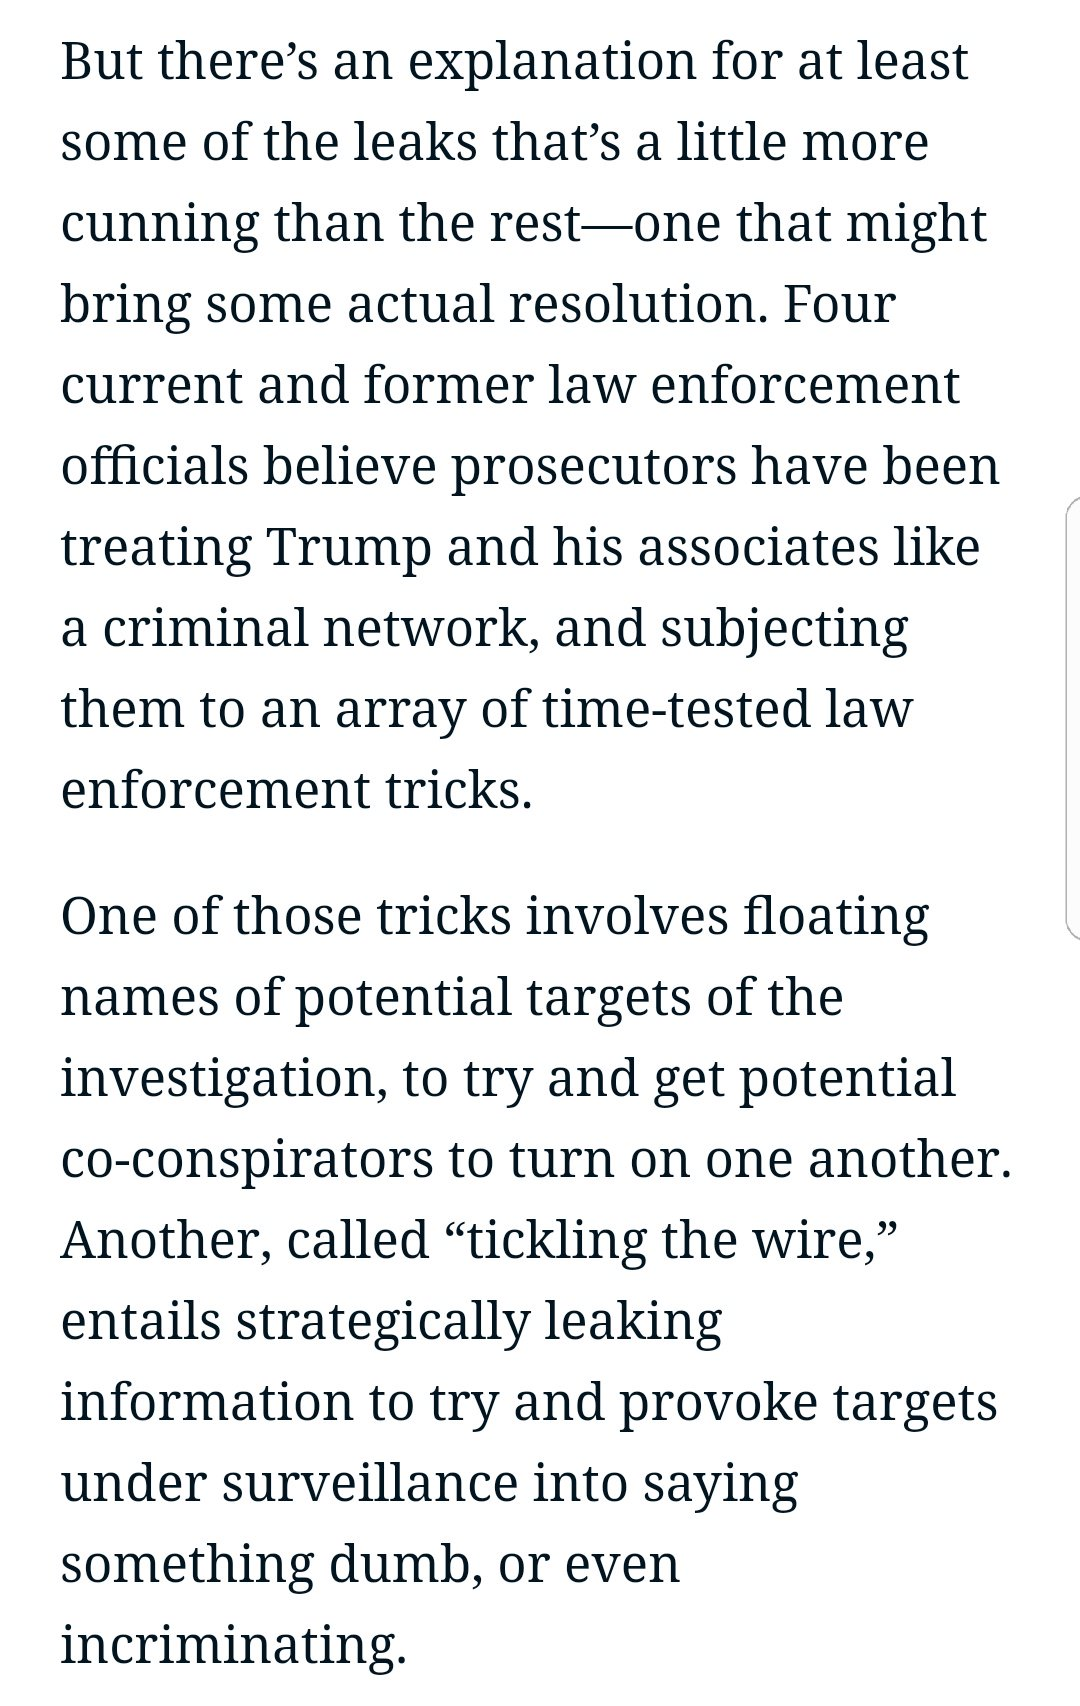 The feds are treating Team Trump in many ways like a mafia family. https://t.co/AJc17n1lL1 https://t.co/YH0Z7l1mLV